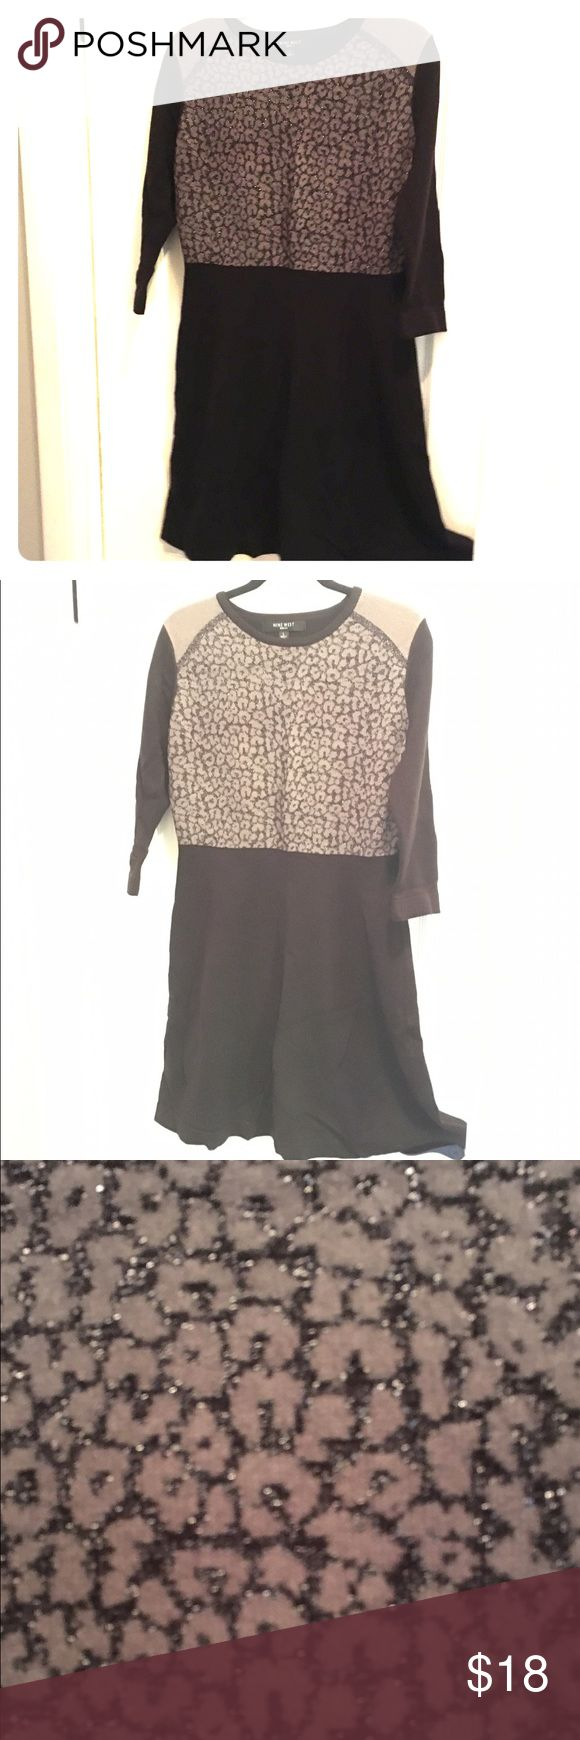 Animal Print Sweater Dress Animal print top with a flared skirt. Top is woven with sparkly silver threads- great for parties or work! Nine West Dresses Long Sleeve